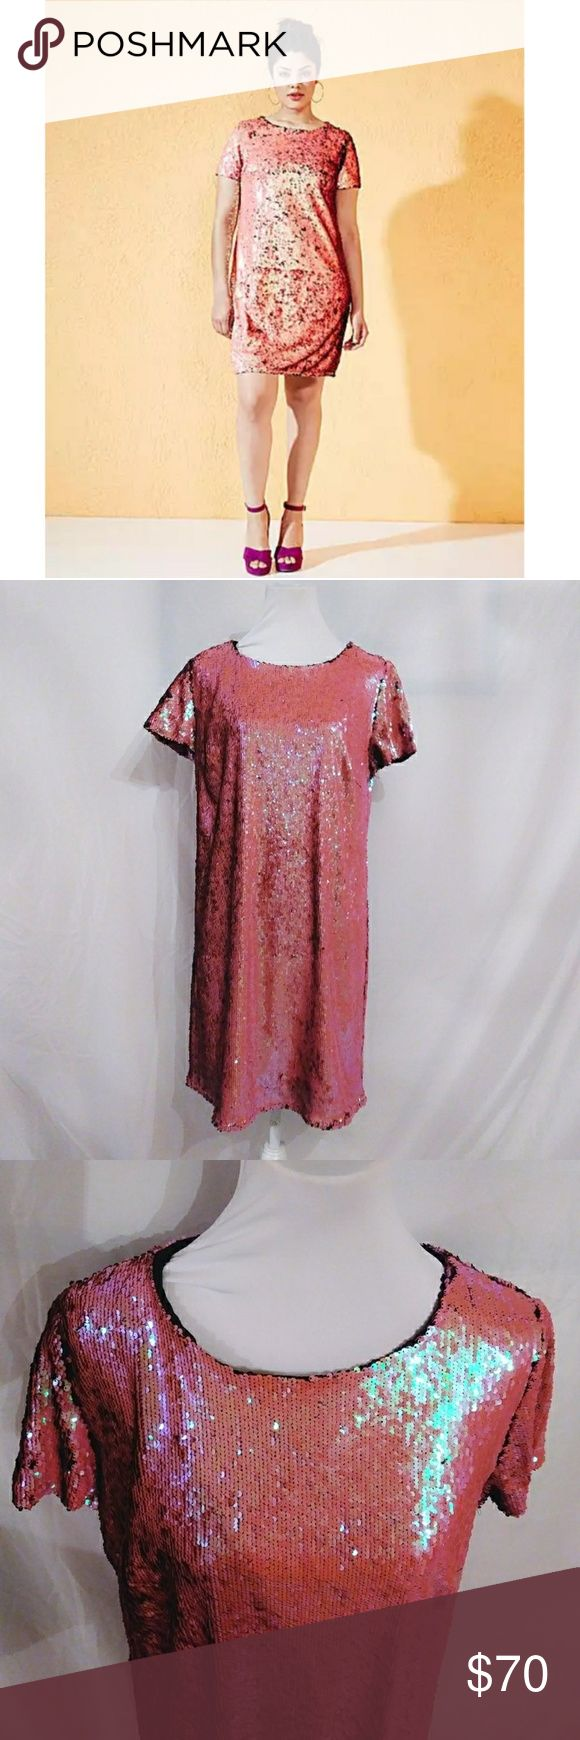 "Coral Rainbow Sequin Shift Dress Coral Rainbow Sequin Shift Dress size - 12. A fabulous all over two-tone sequin shift dress that is fully lined, stretch fabric with short sleeves. Very sparkly with the underside of the sequins being black, move the sequins in a different direction to add effect! Measures 35"" in length, polyester and polyester lining. I took photos in different lighting so you could see the true beauty of these sequins. It will be shipped in the box it arrived in, with the…"